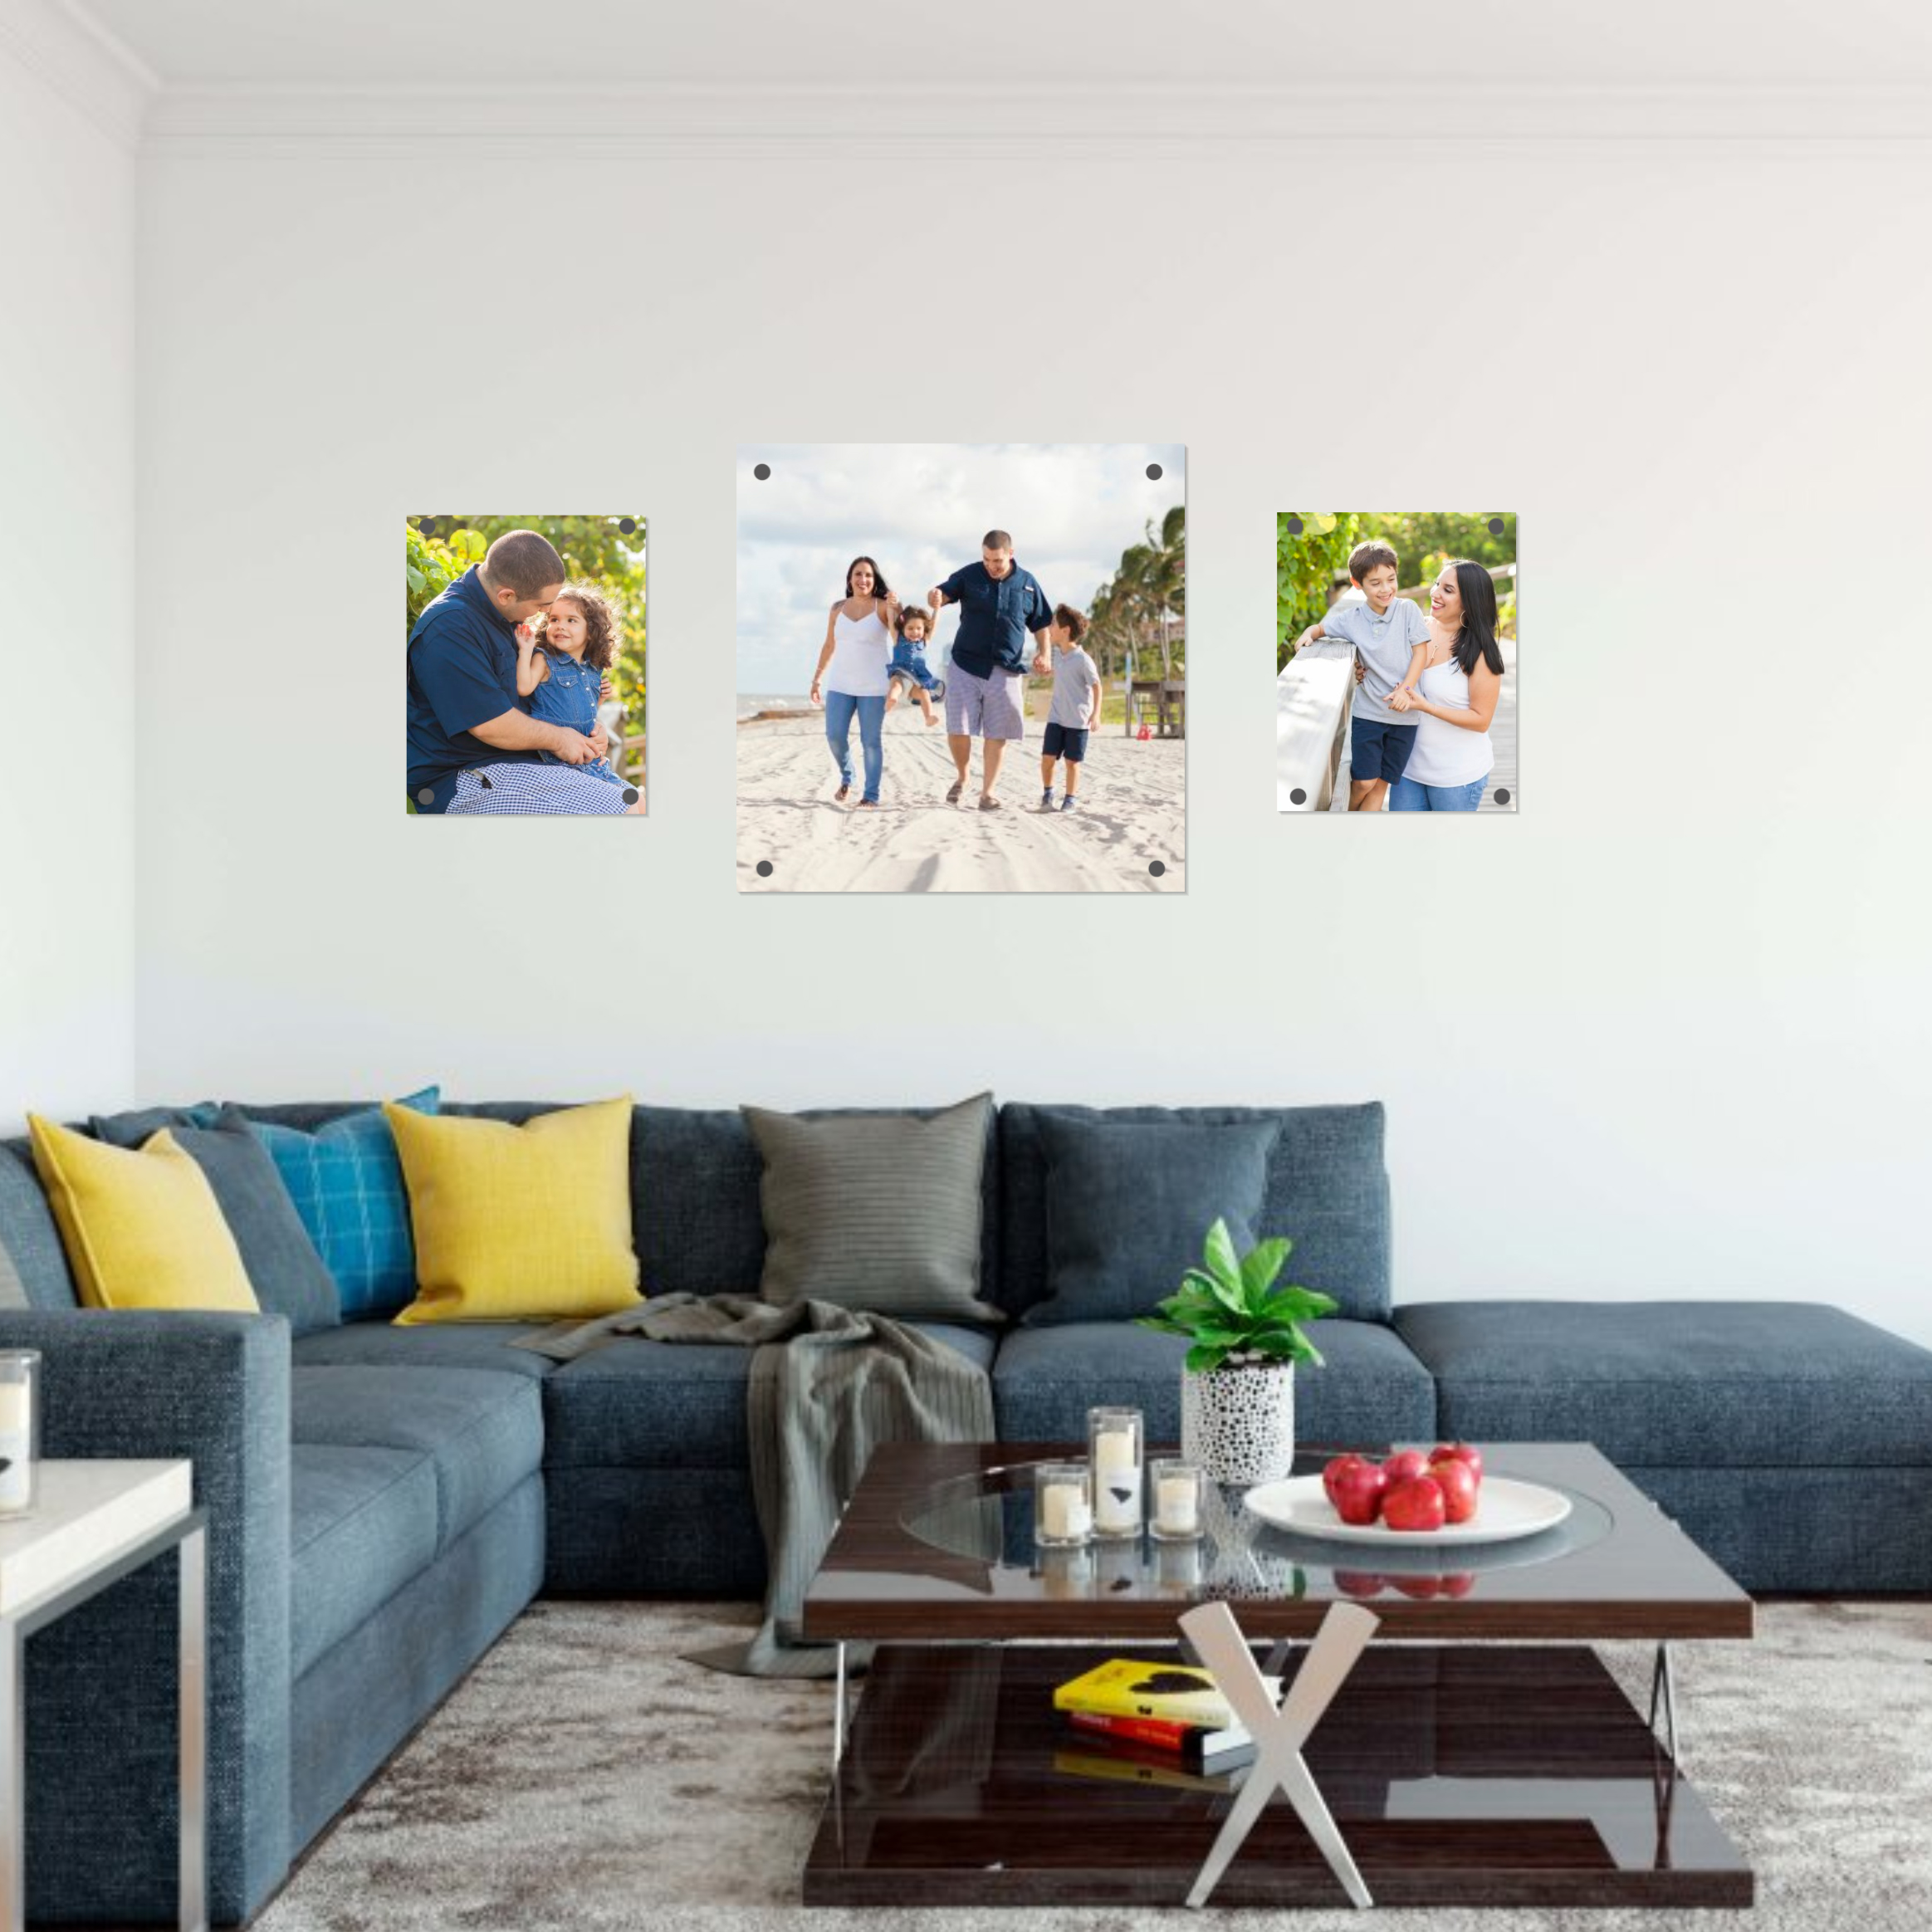 Family-portraits-dania-beach-photography-with pictures-on-wall